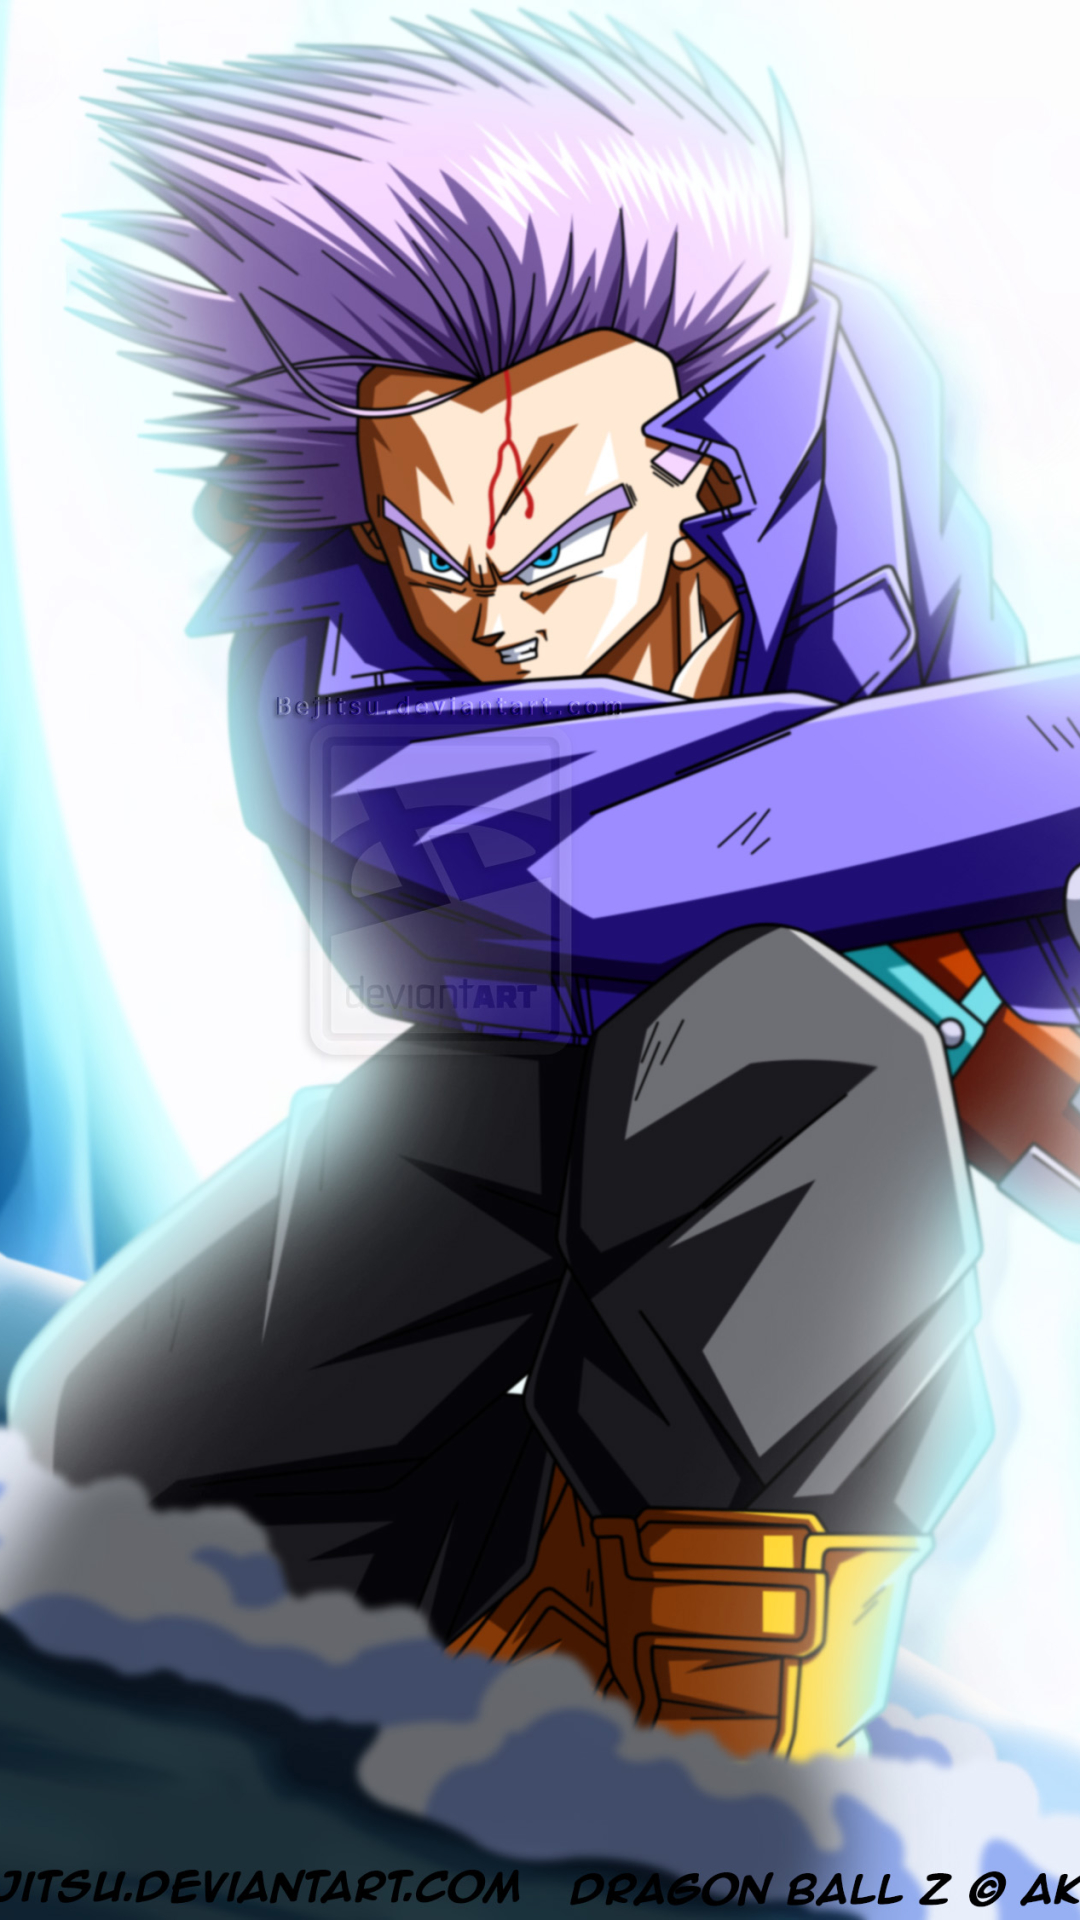 dragon ball z wallpapers iphone 6